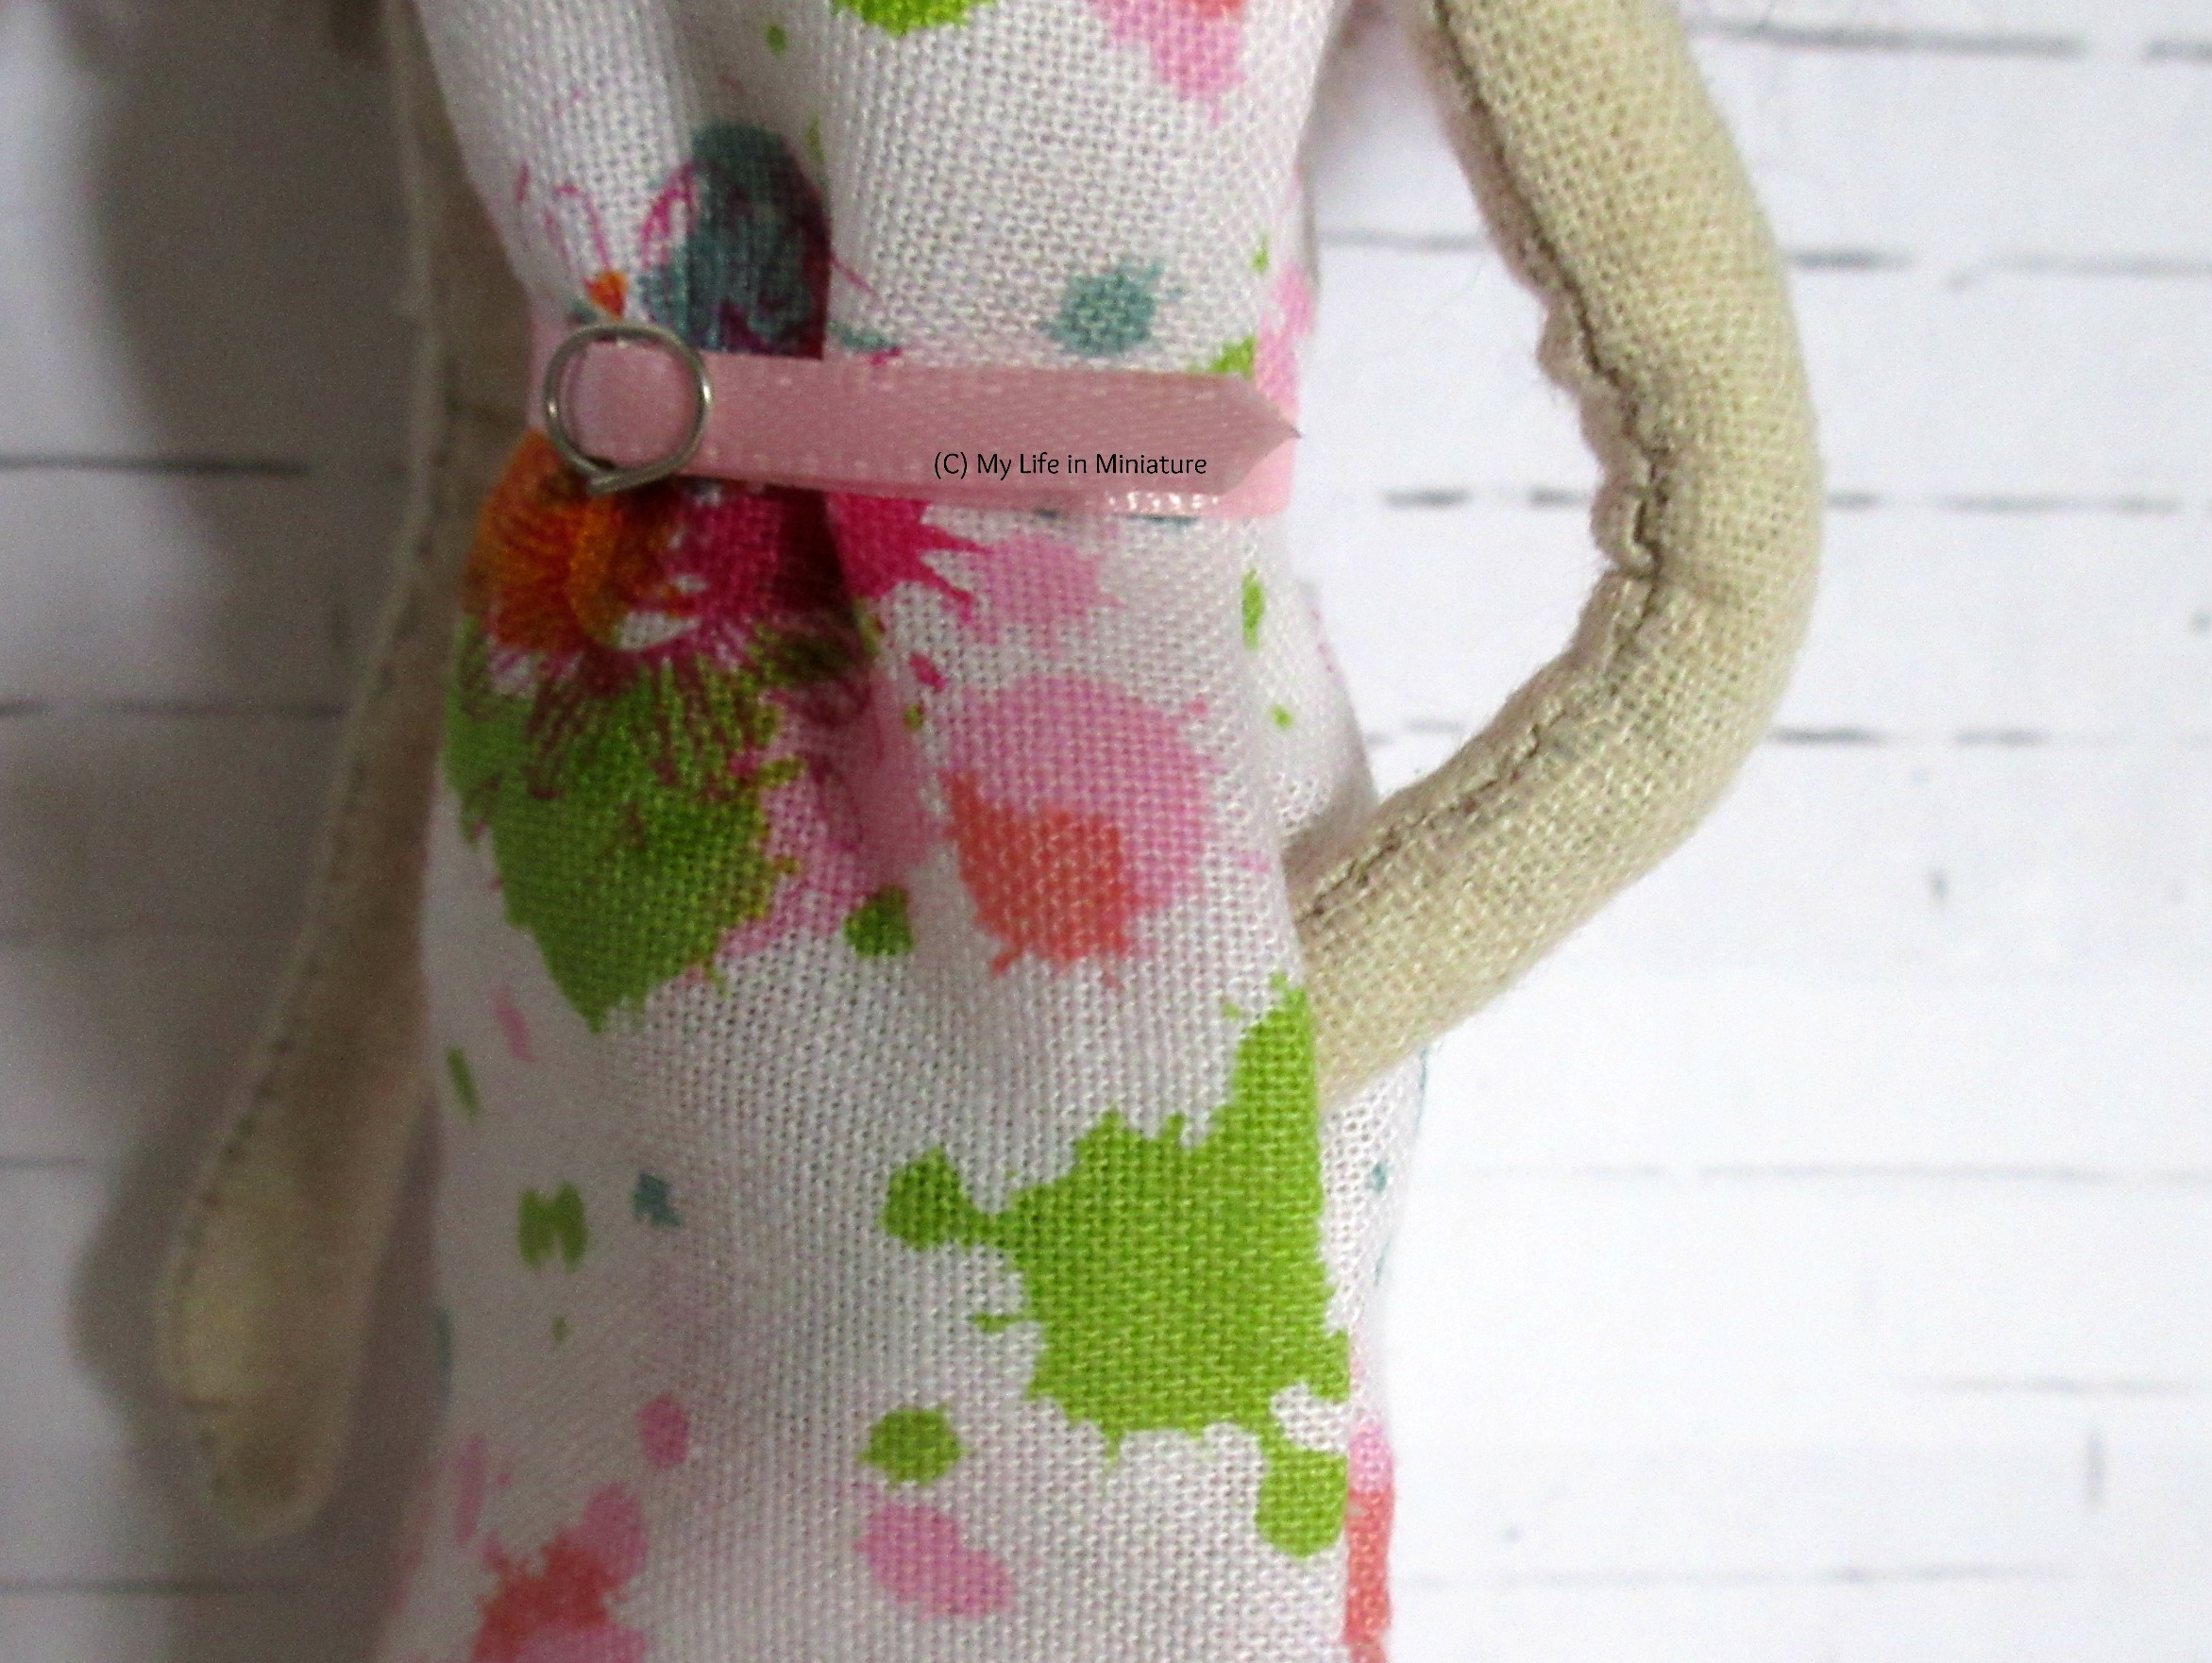 Close-up of the side of Lola's dress. Her hand is in the side-seam pocket in the dress, and the belt is visible.